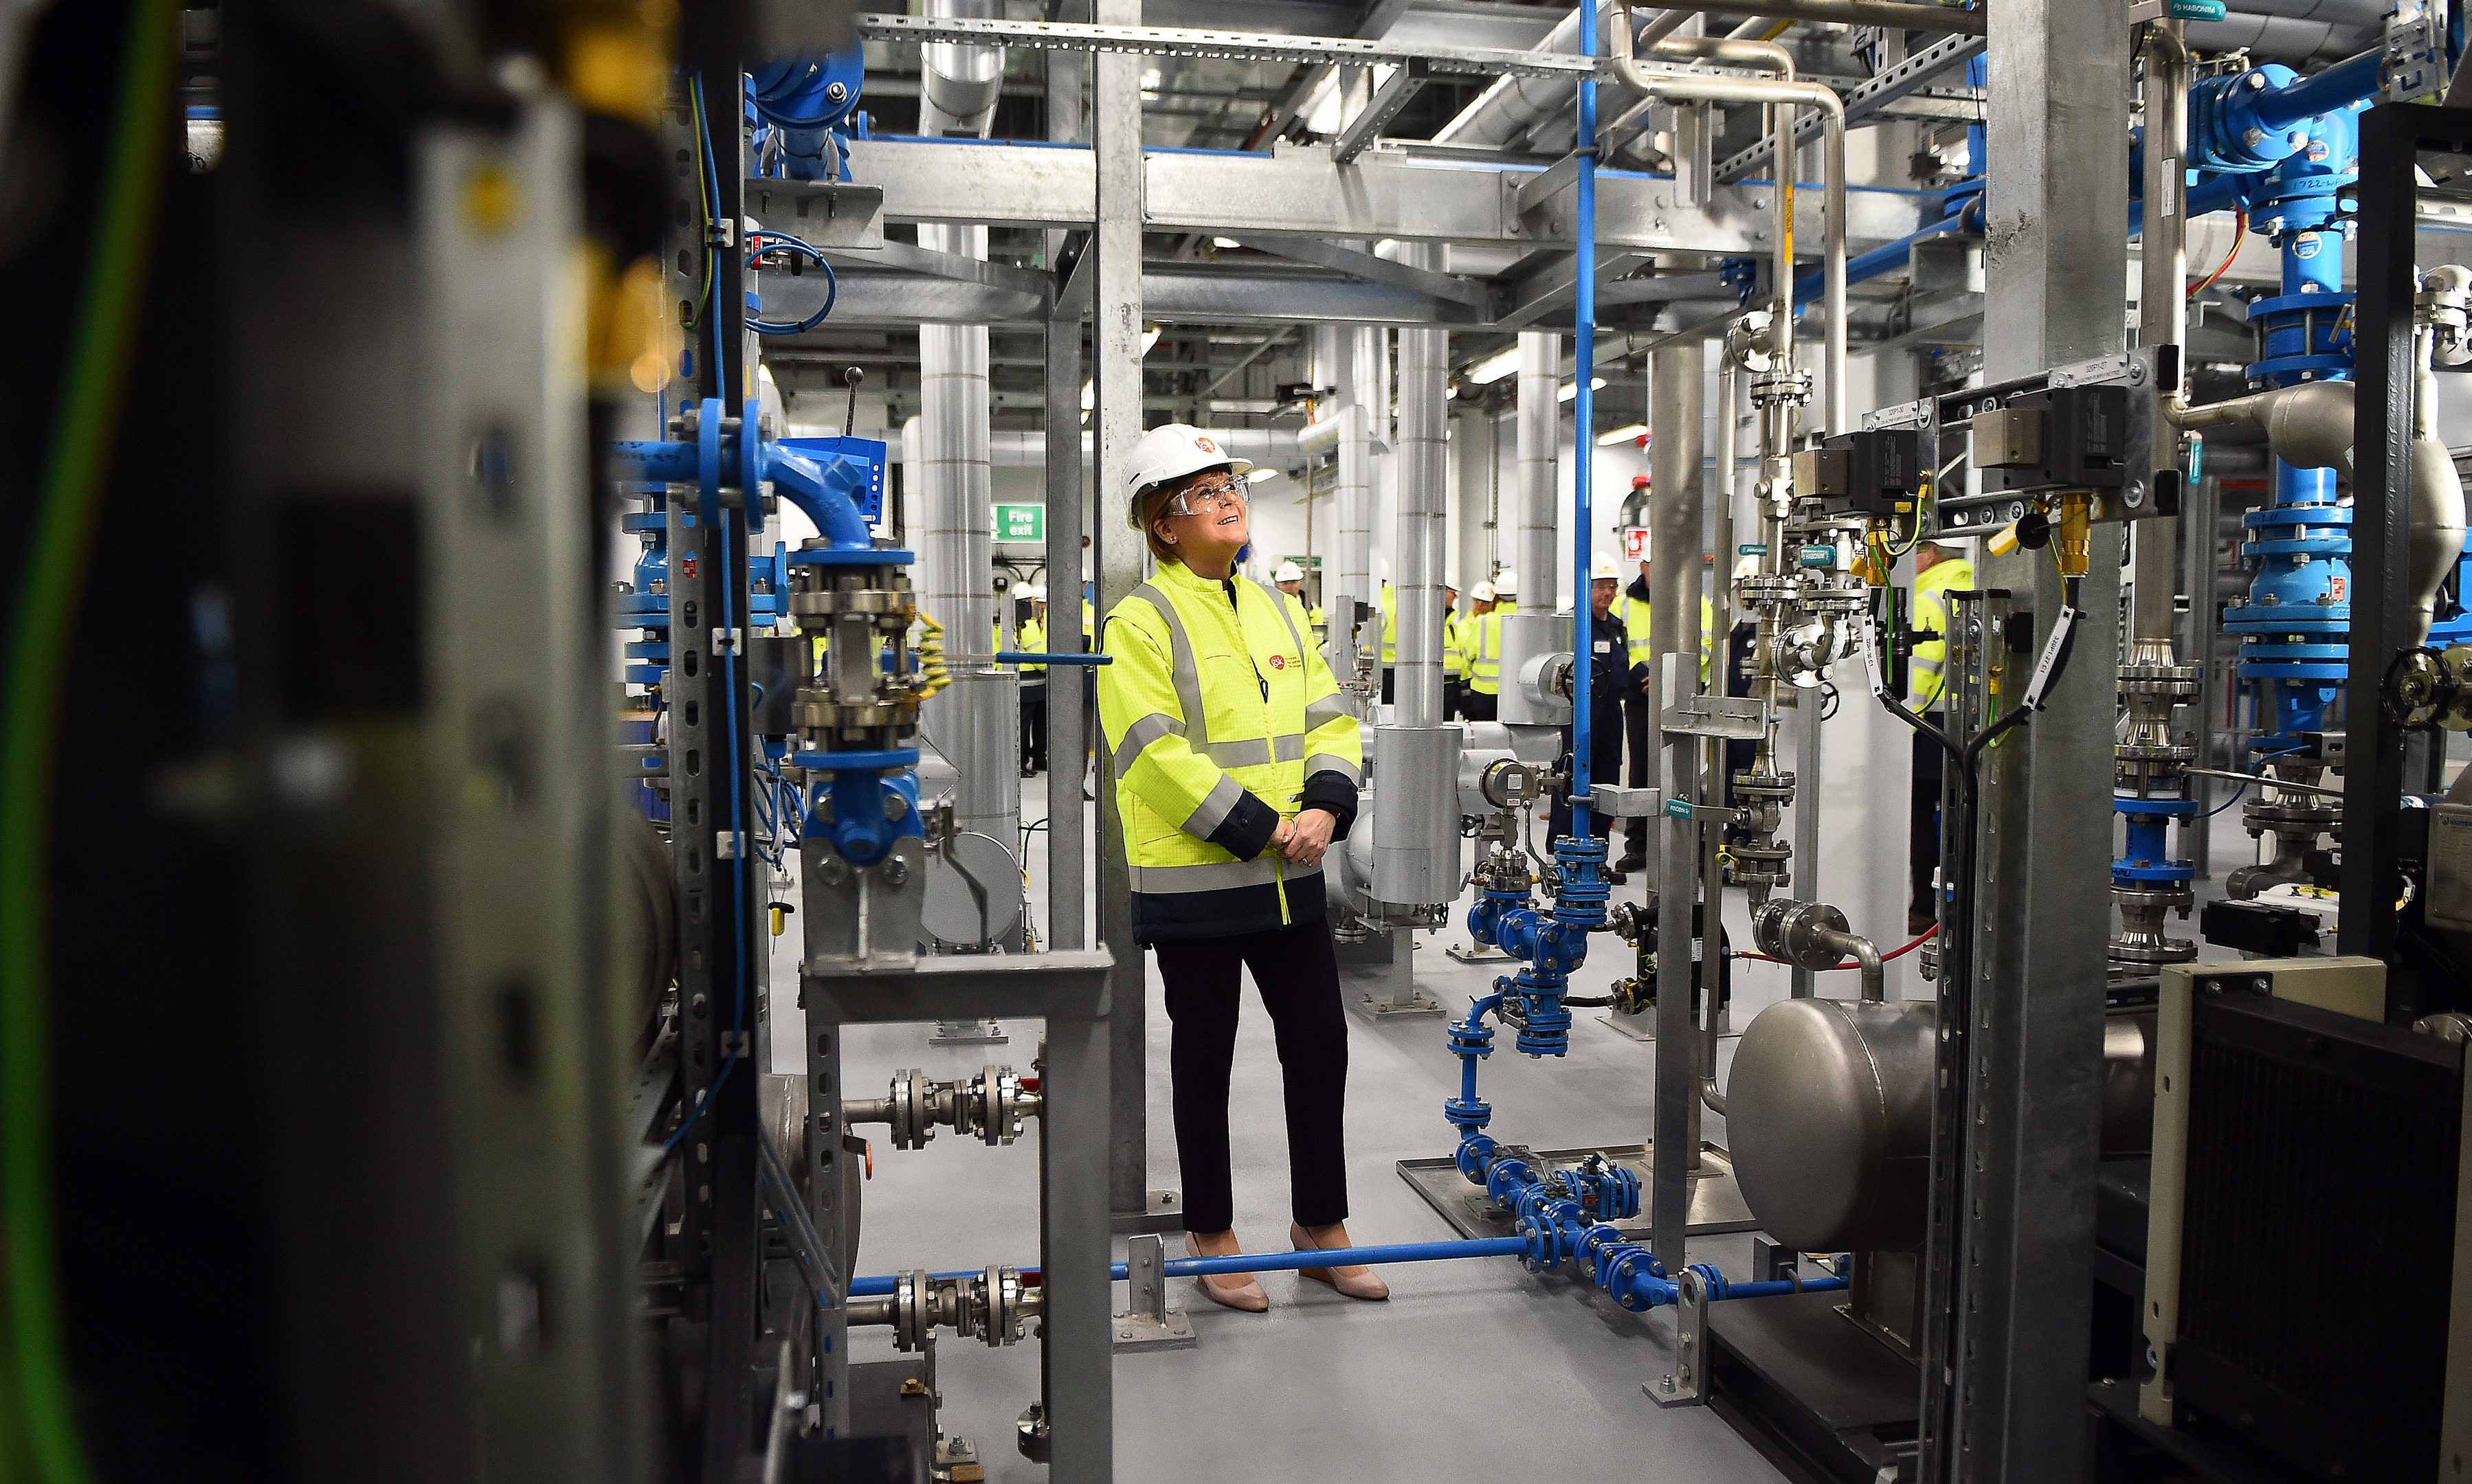 First Minister of Scotland Nicola Sturgeon takes a tour as she pays a visit to officially open GSK's new production building on October 22, 2018 in Montrose.